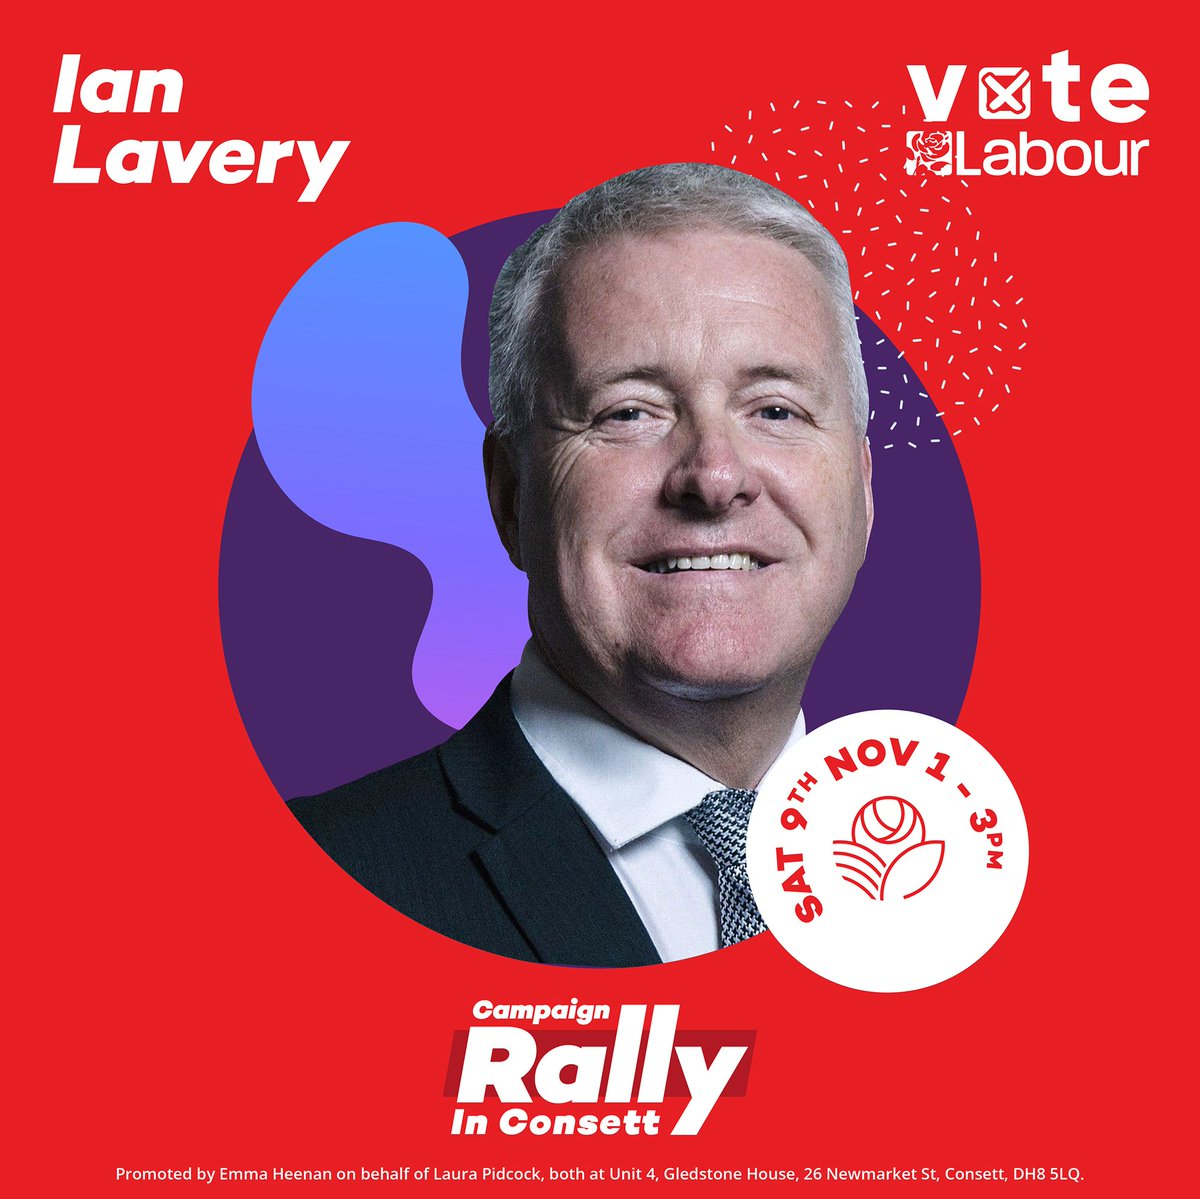 So looking forward to our #GE2019 campaign rally on Saturday & welcoming my good friend @IanLaveryMP to Consett. I'm certain Ian will warm the crowd up. The event takes place 1-3pm at St Patricks Church Hall, DH8 5AX. Details & free tickets here: facebook.com/events/4110456…